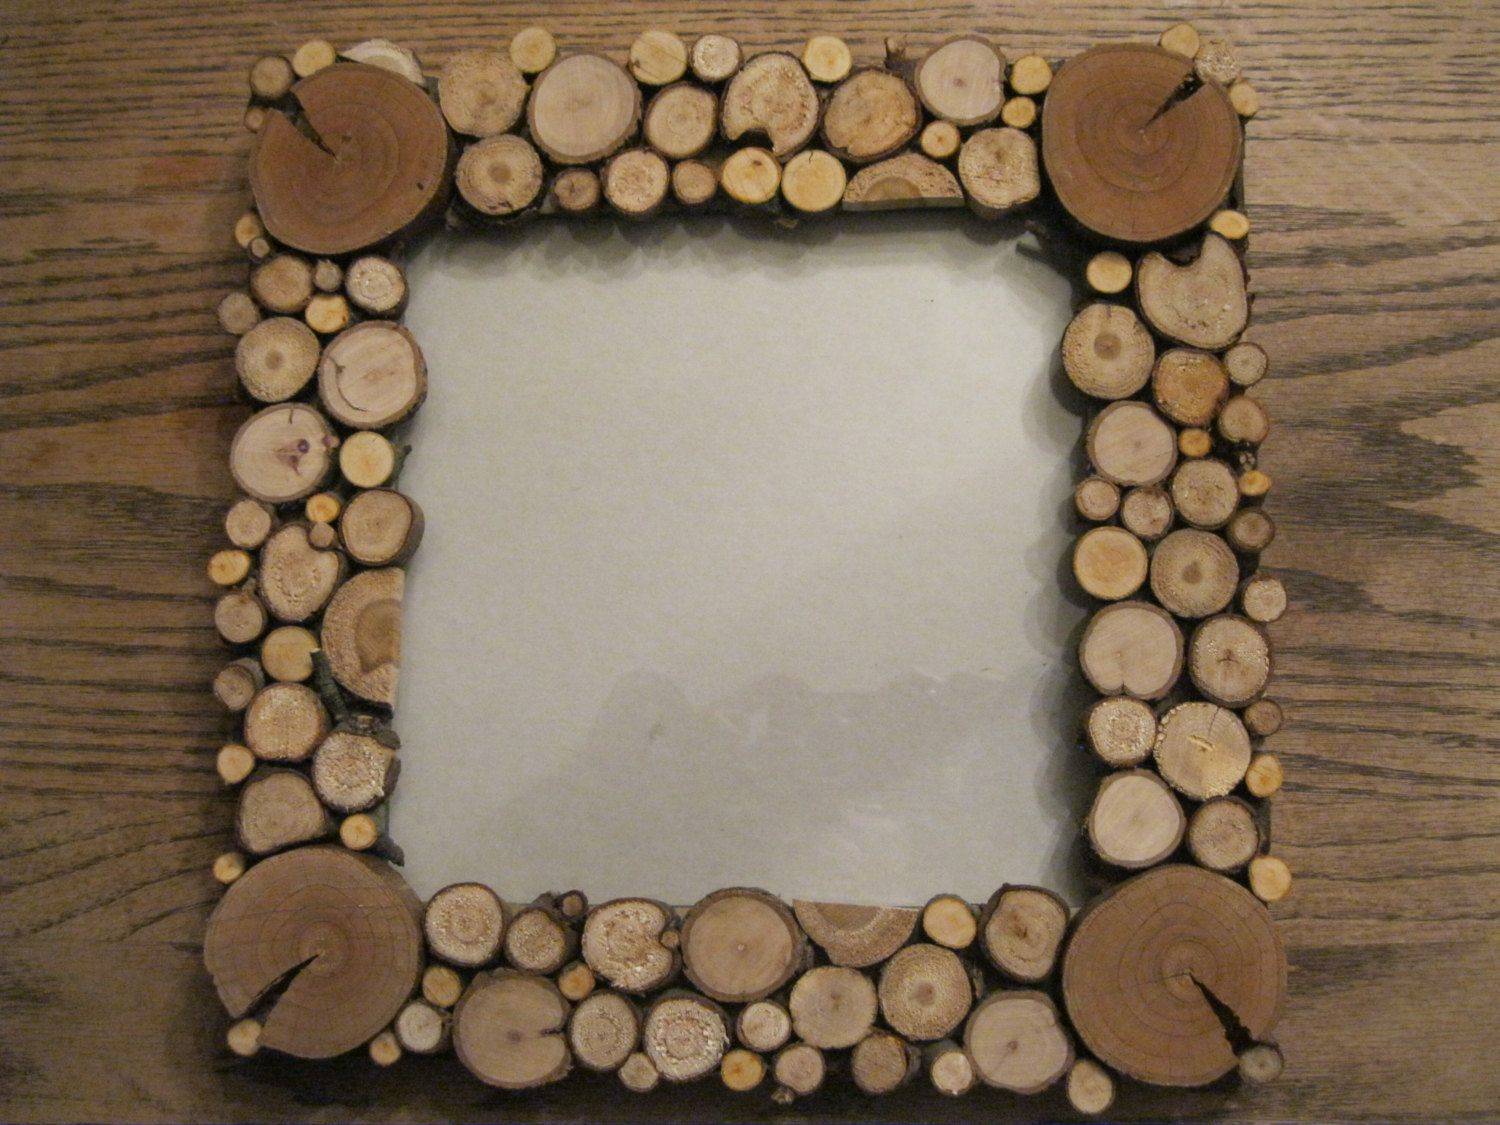 Tree Slice Picture Frame Wood Slice Wedding Frame Rustic Wedding Frame Lodge Decor Woodland Weddings Cabin Decor Wood Slices Rustic Wedding Frame Lodge Decor